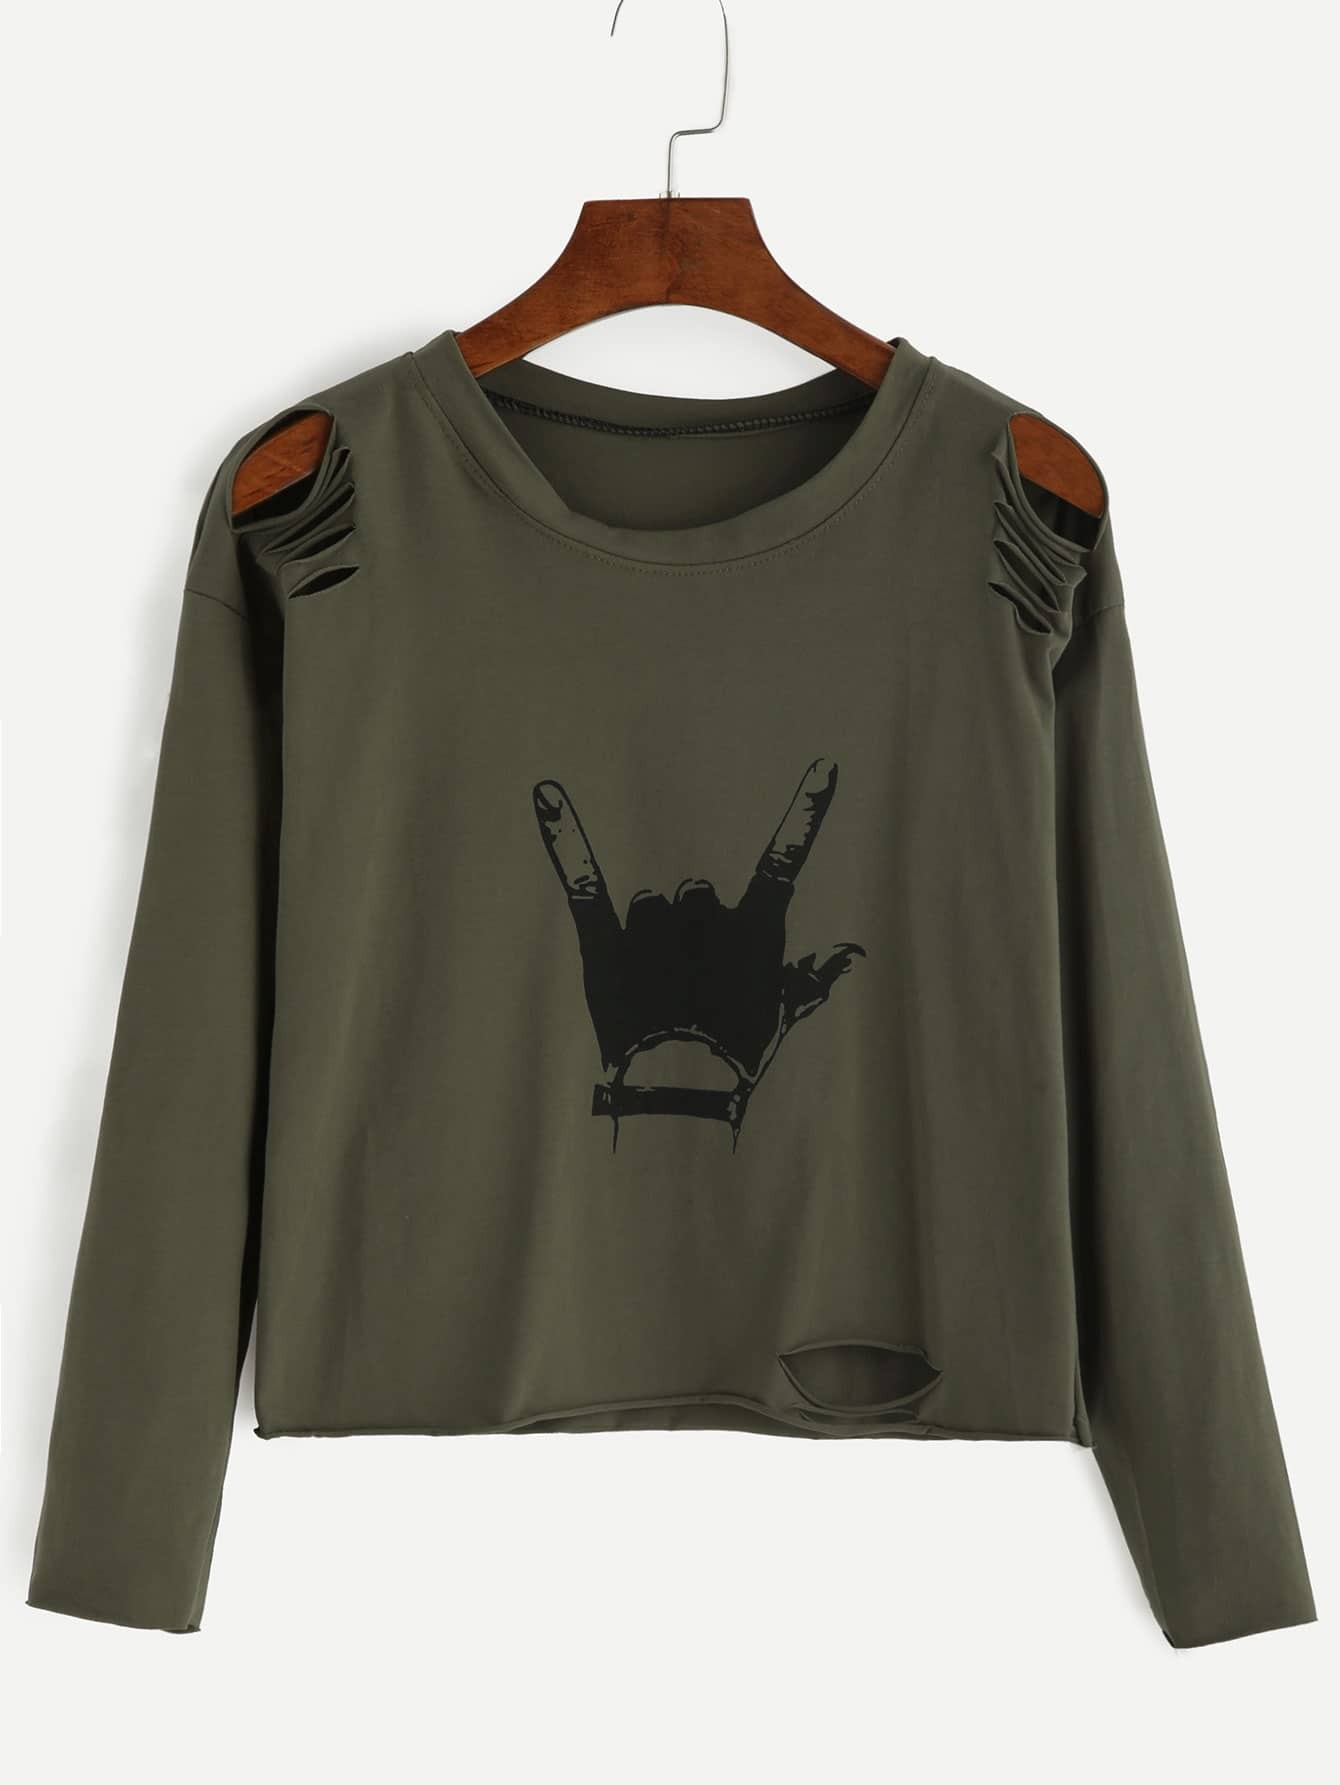 Army Green Gesture Print Distressed T-shirt tee160823105